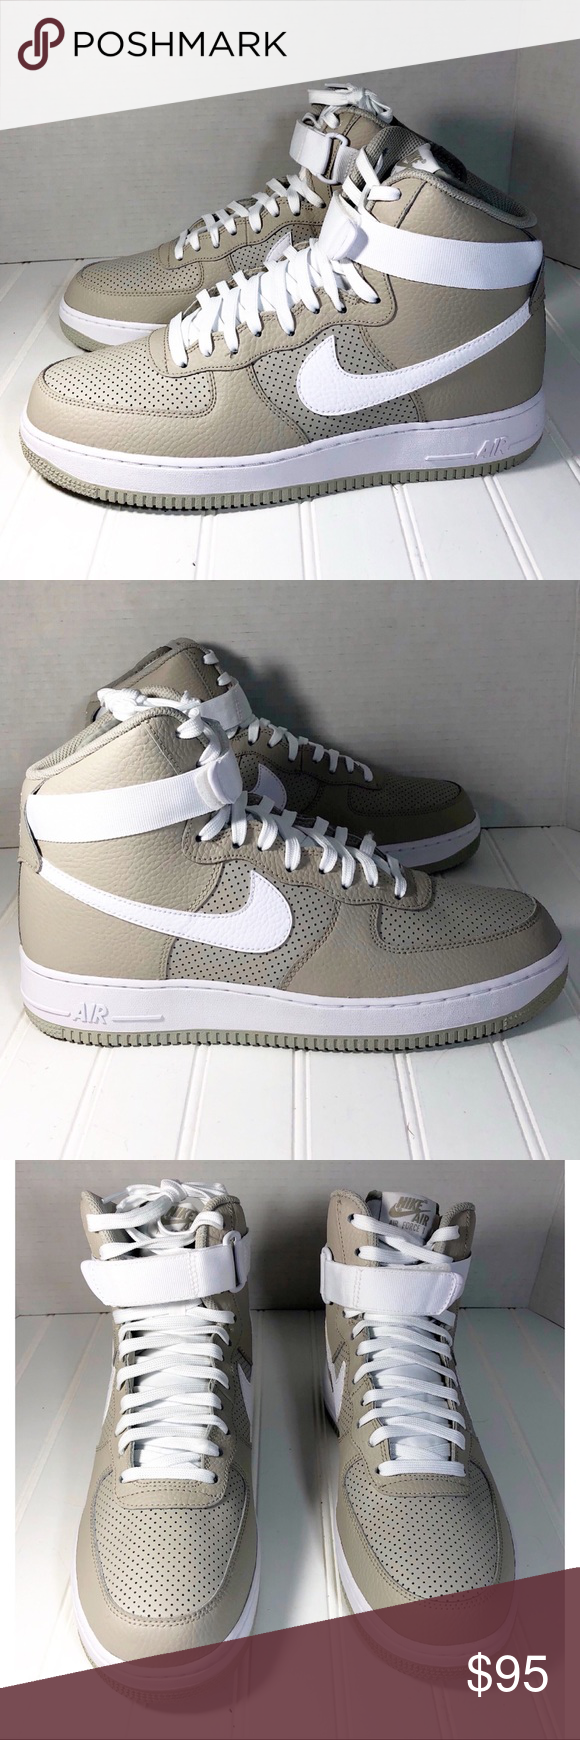 Men s Nike Air Force 1 High 315121-039 Size 10.5 New with box Nike Air  Force 1 High  07 Style ID  315121-039 Brand  Nike Color  Pale Gray White  Size  Men s ... 465e429c20a3